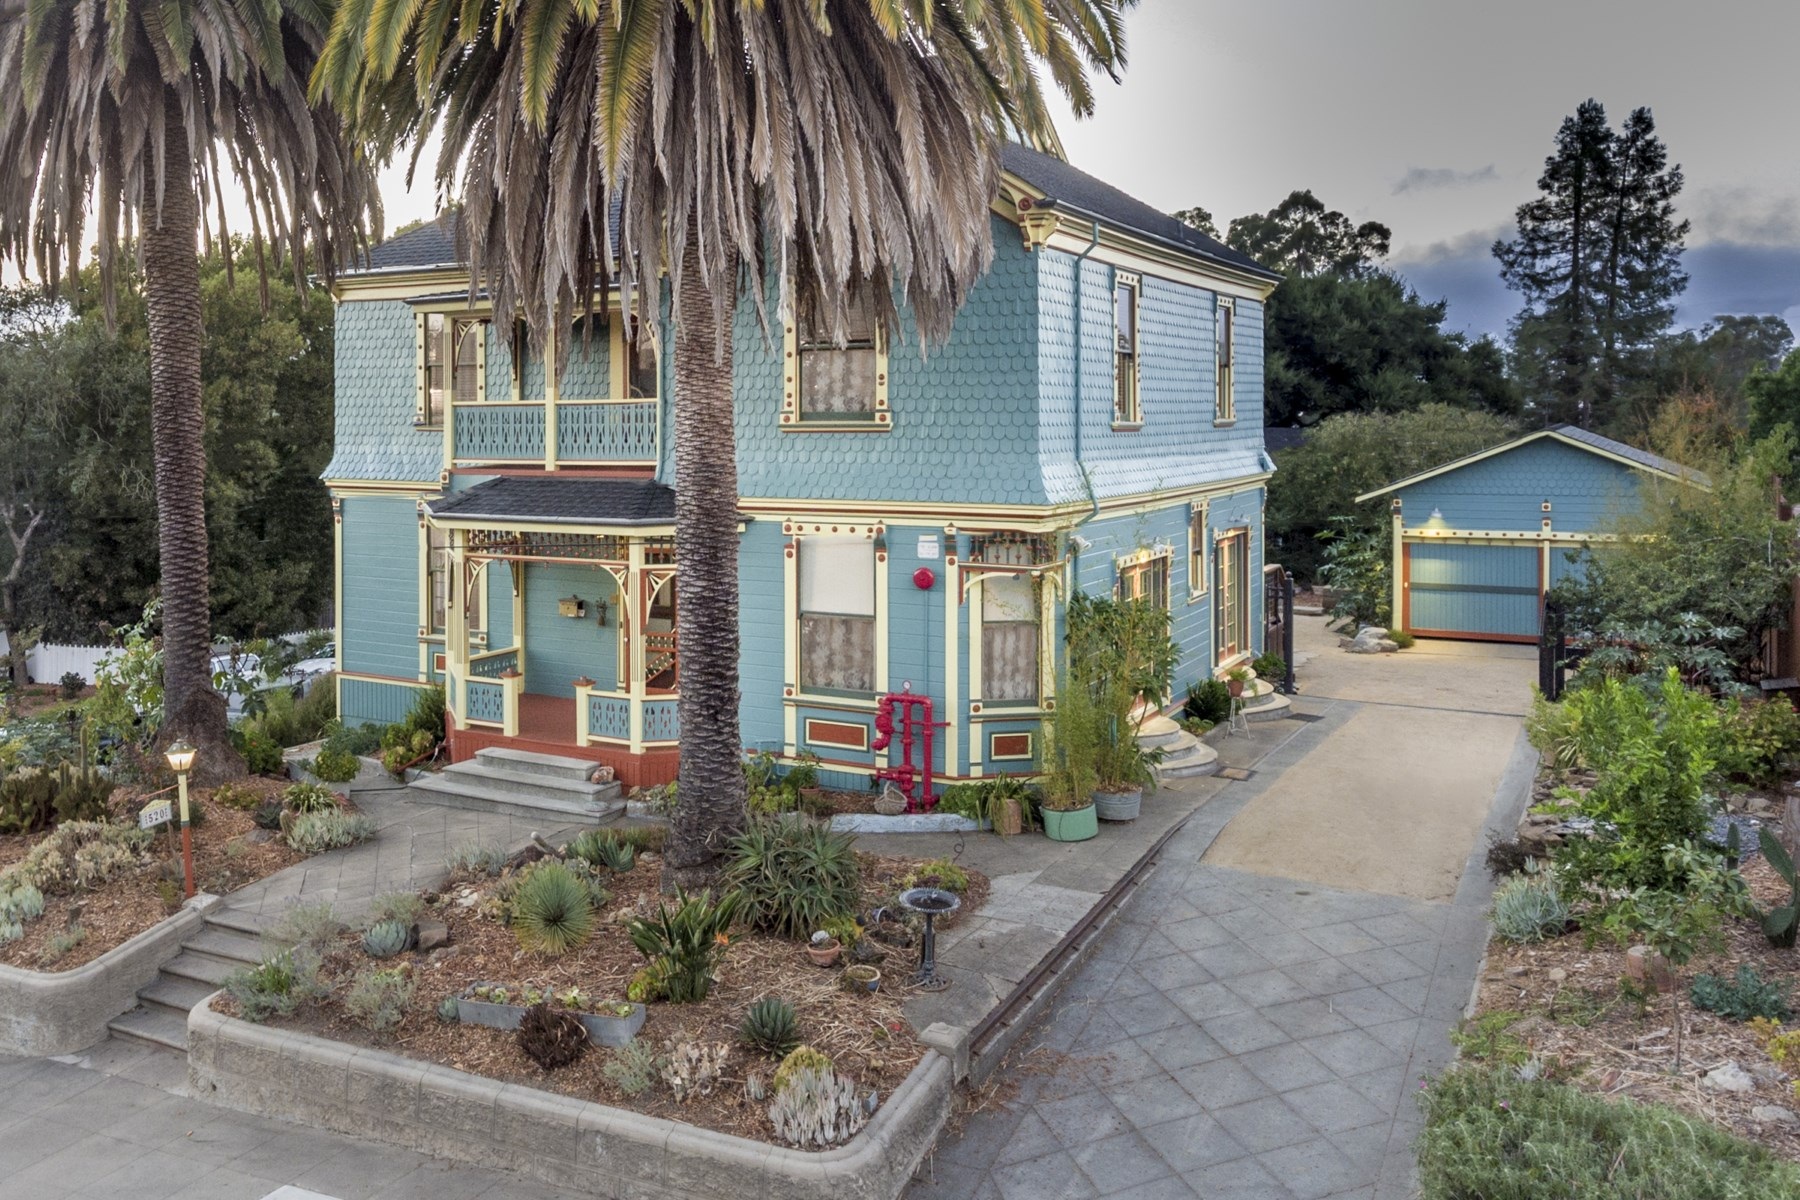 Single Family Home for Sale at Artfully Renovated Victorian 520 Galland St Petaluma, California 94952 United States